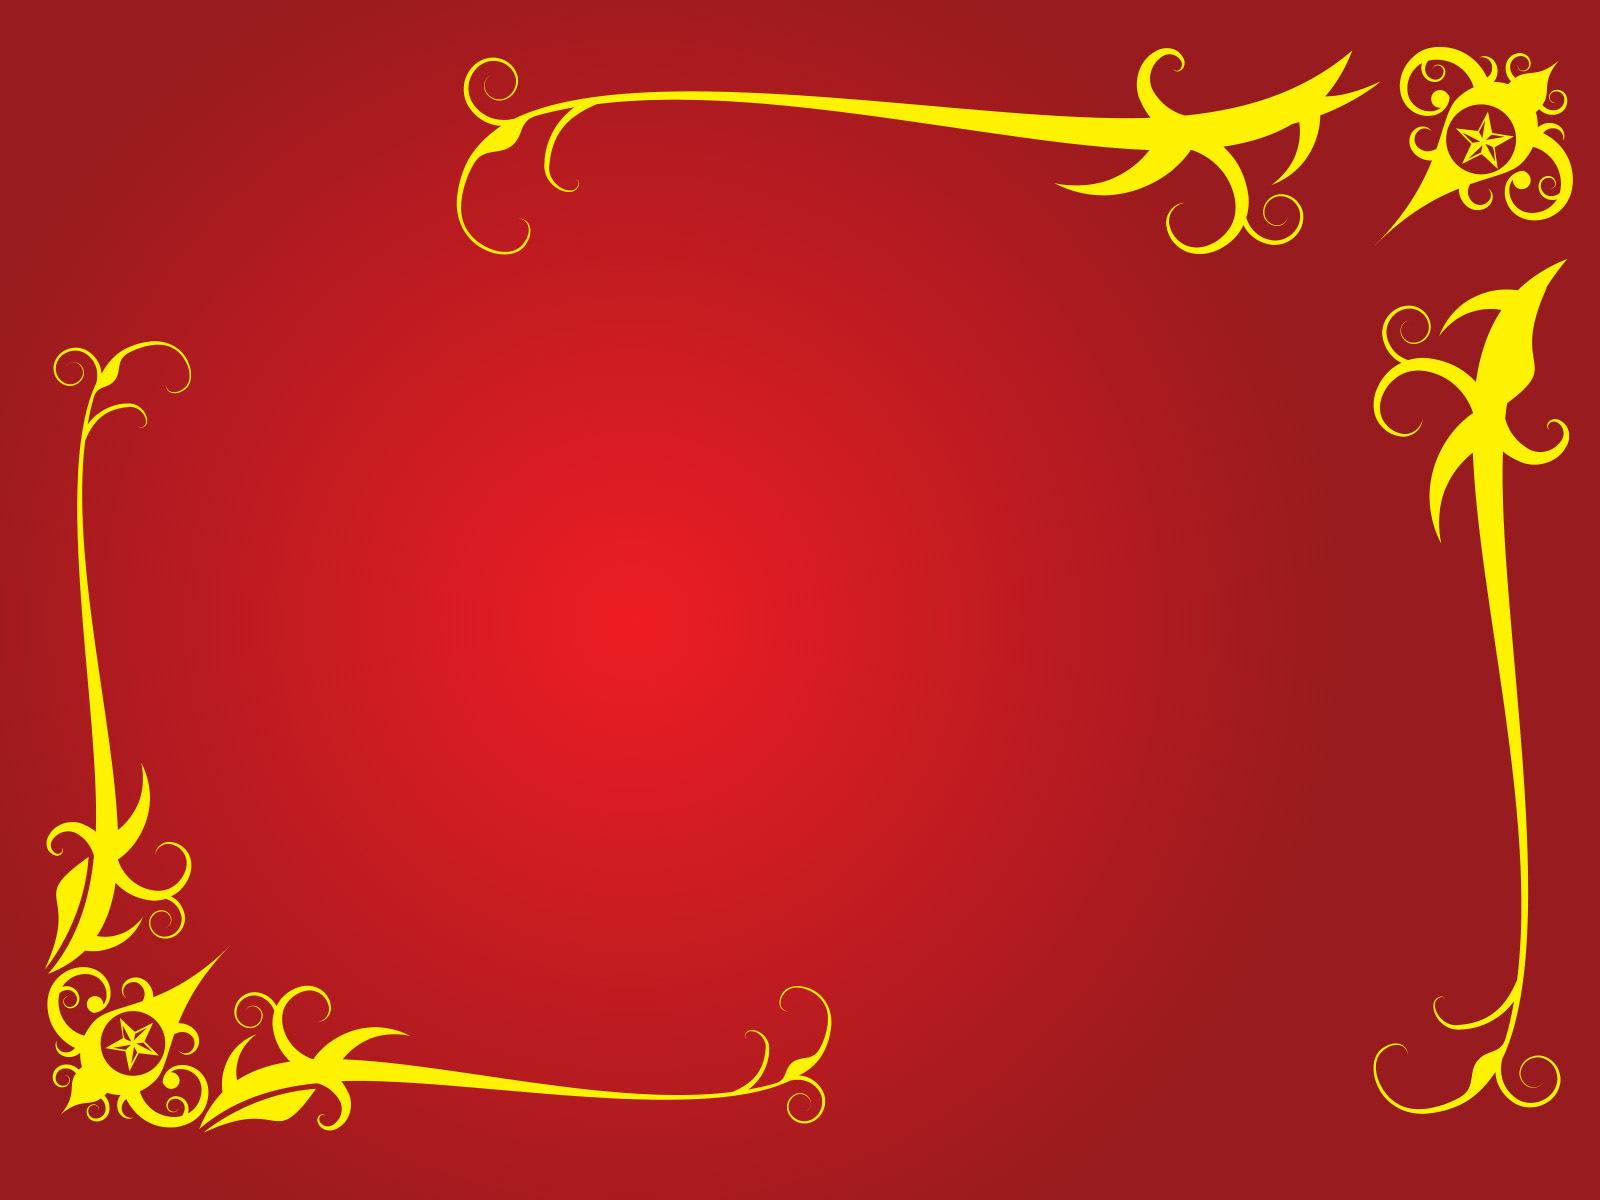 Home Design Layout Templates Love Spark Backgrounds Love Red Yellow Templates